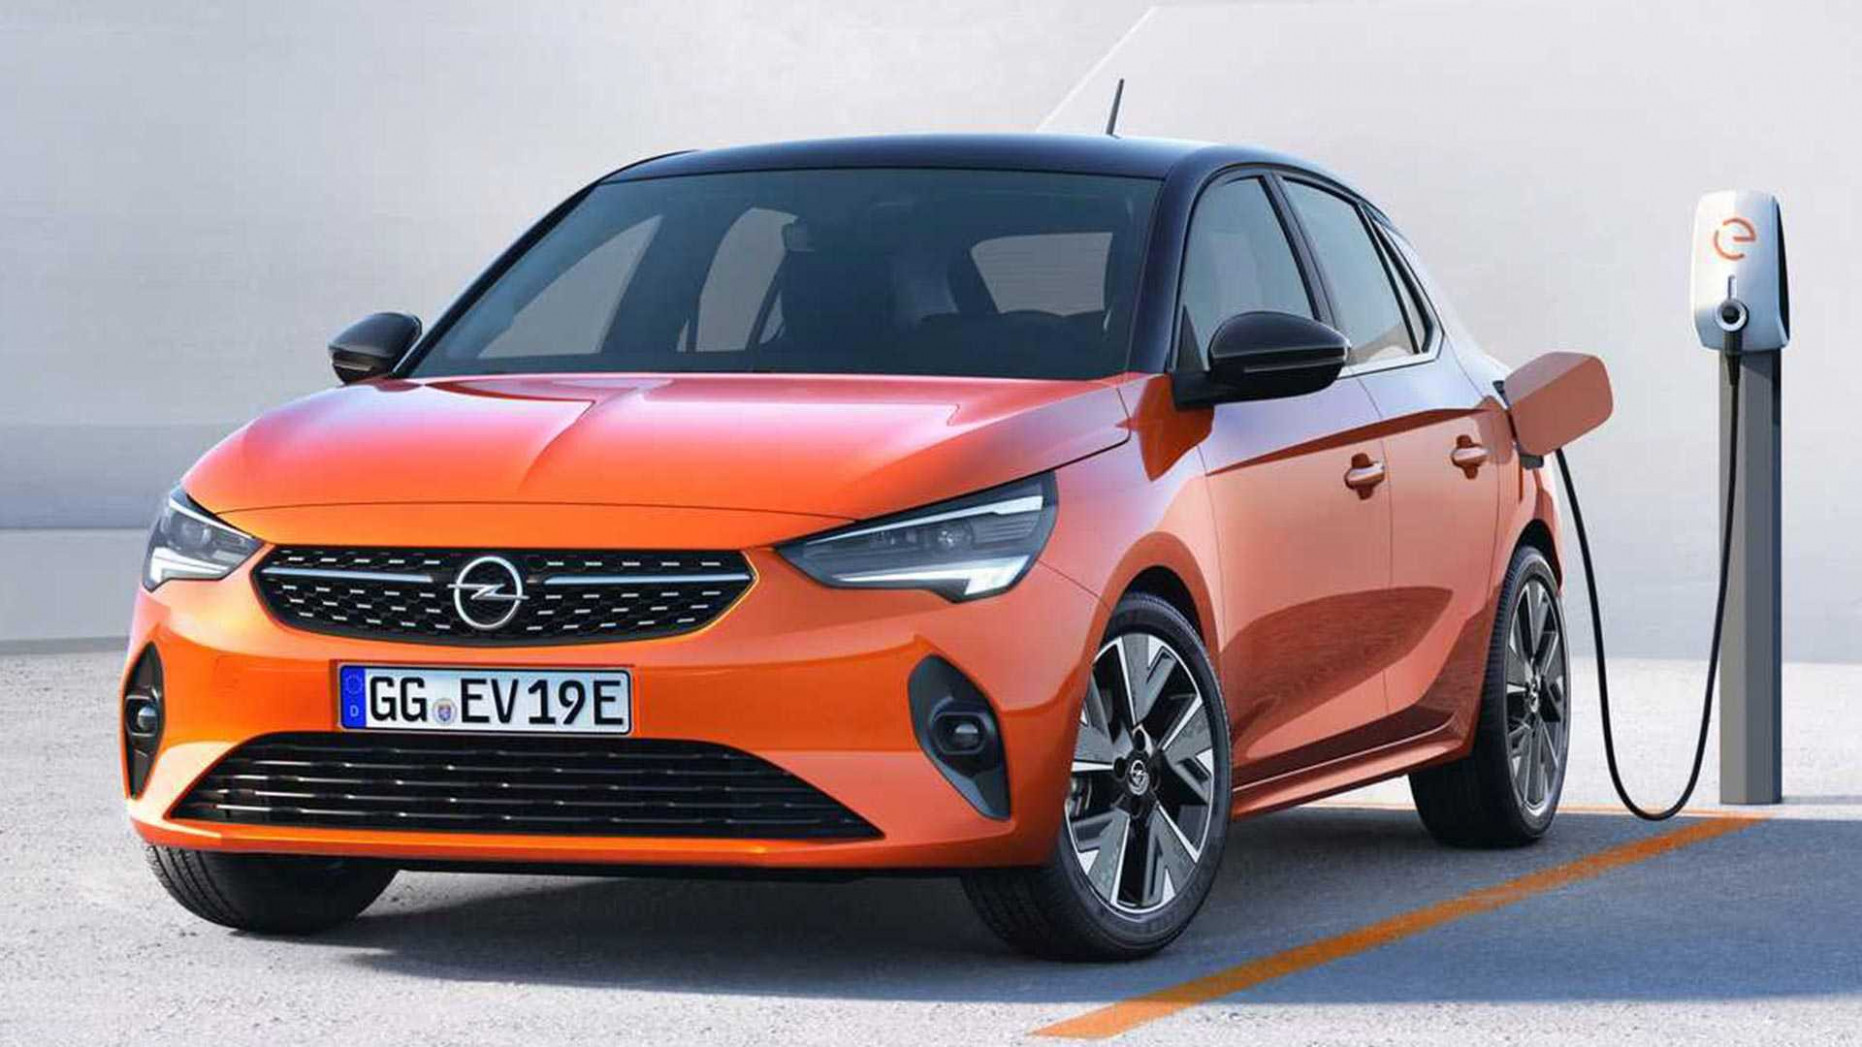 Release Opel Will Launch Full-Electric Corsa In 2022